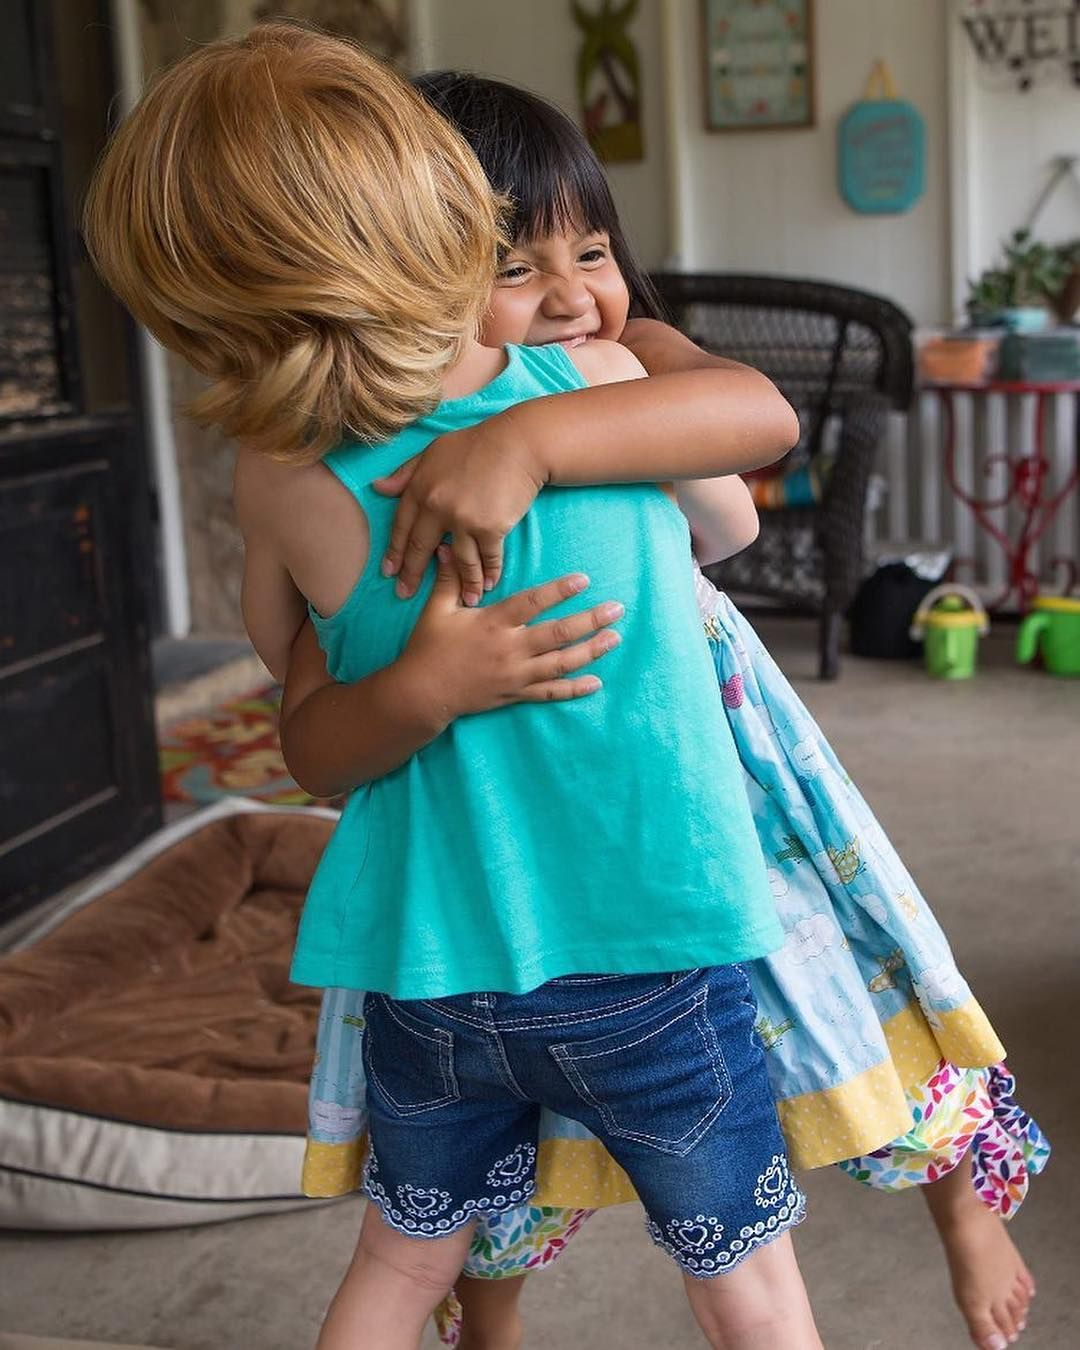 Two Young Friends Hug Goodbye During Their Last Playdate Before A